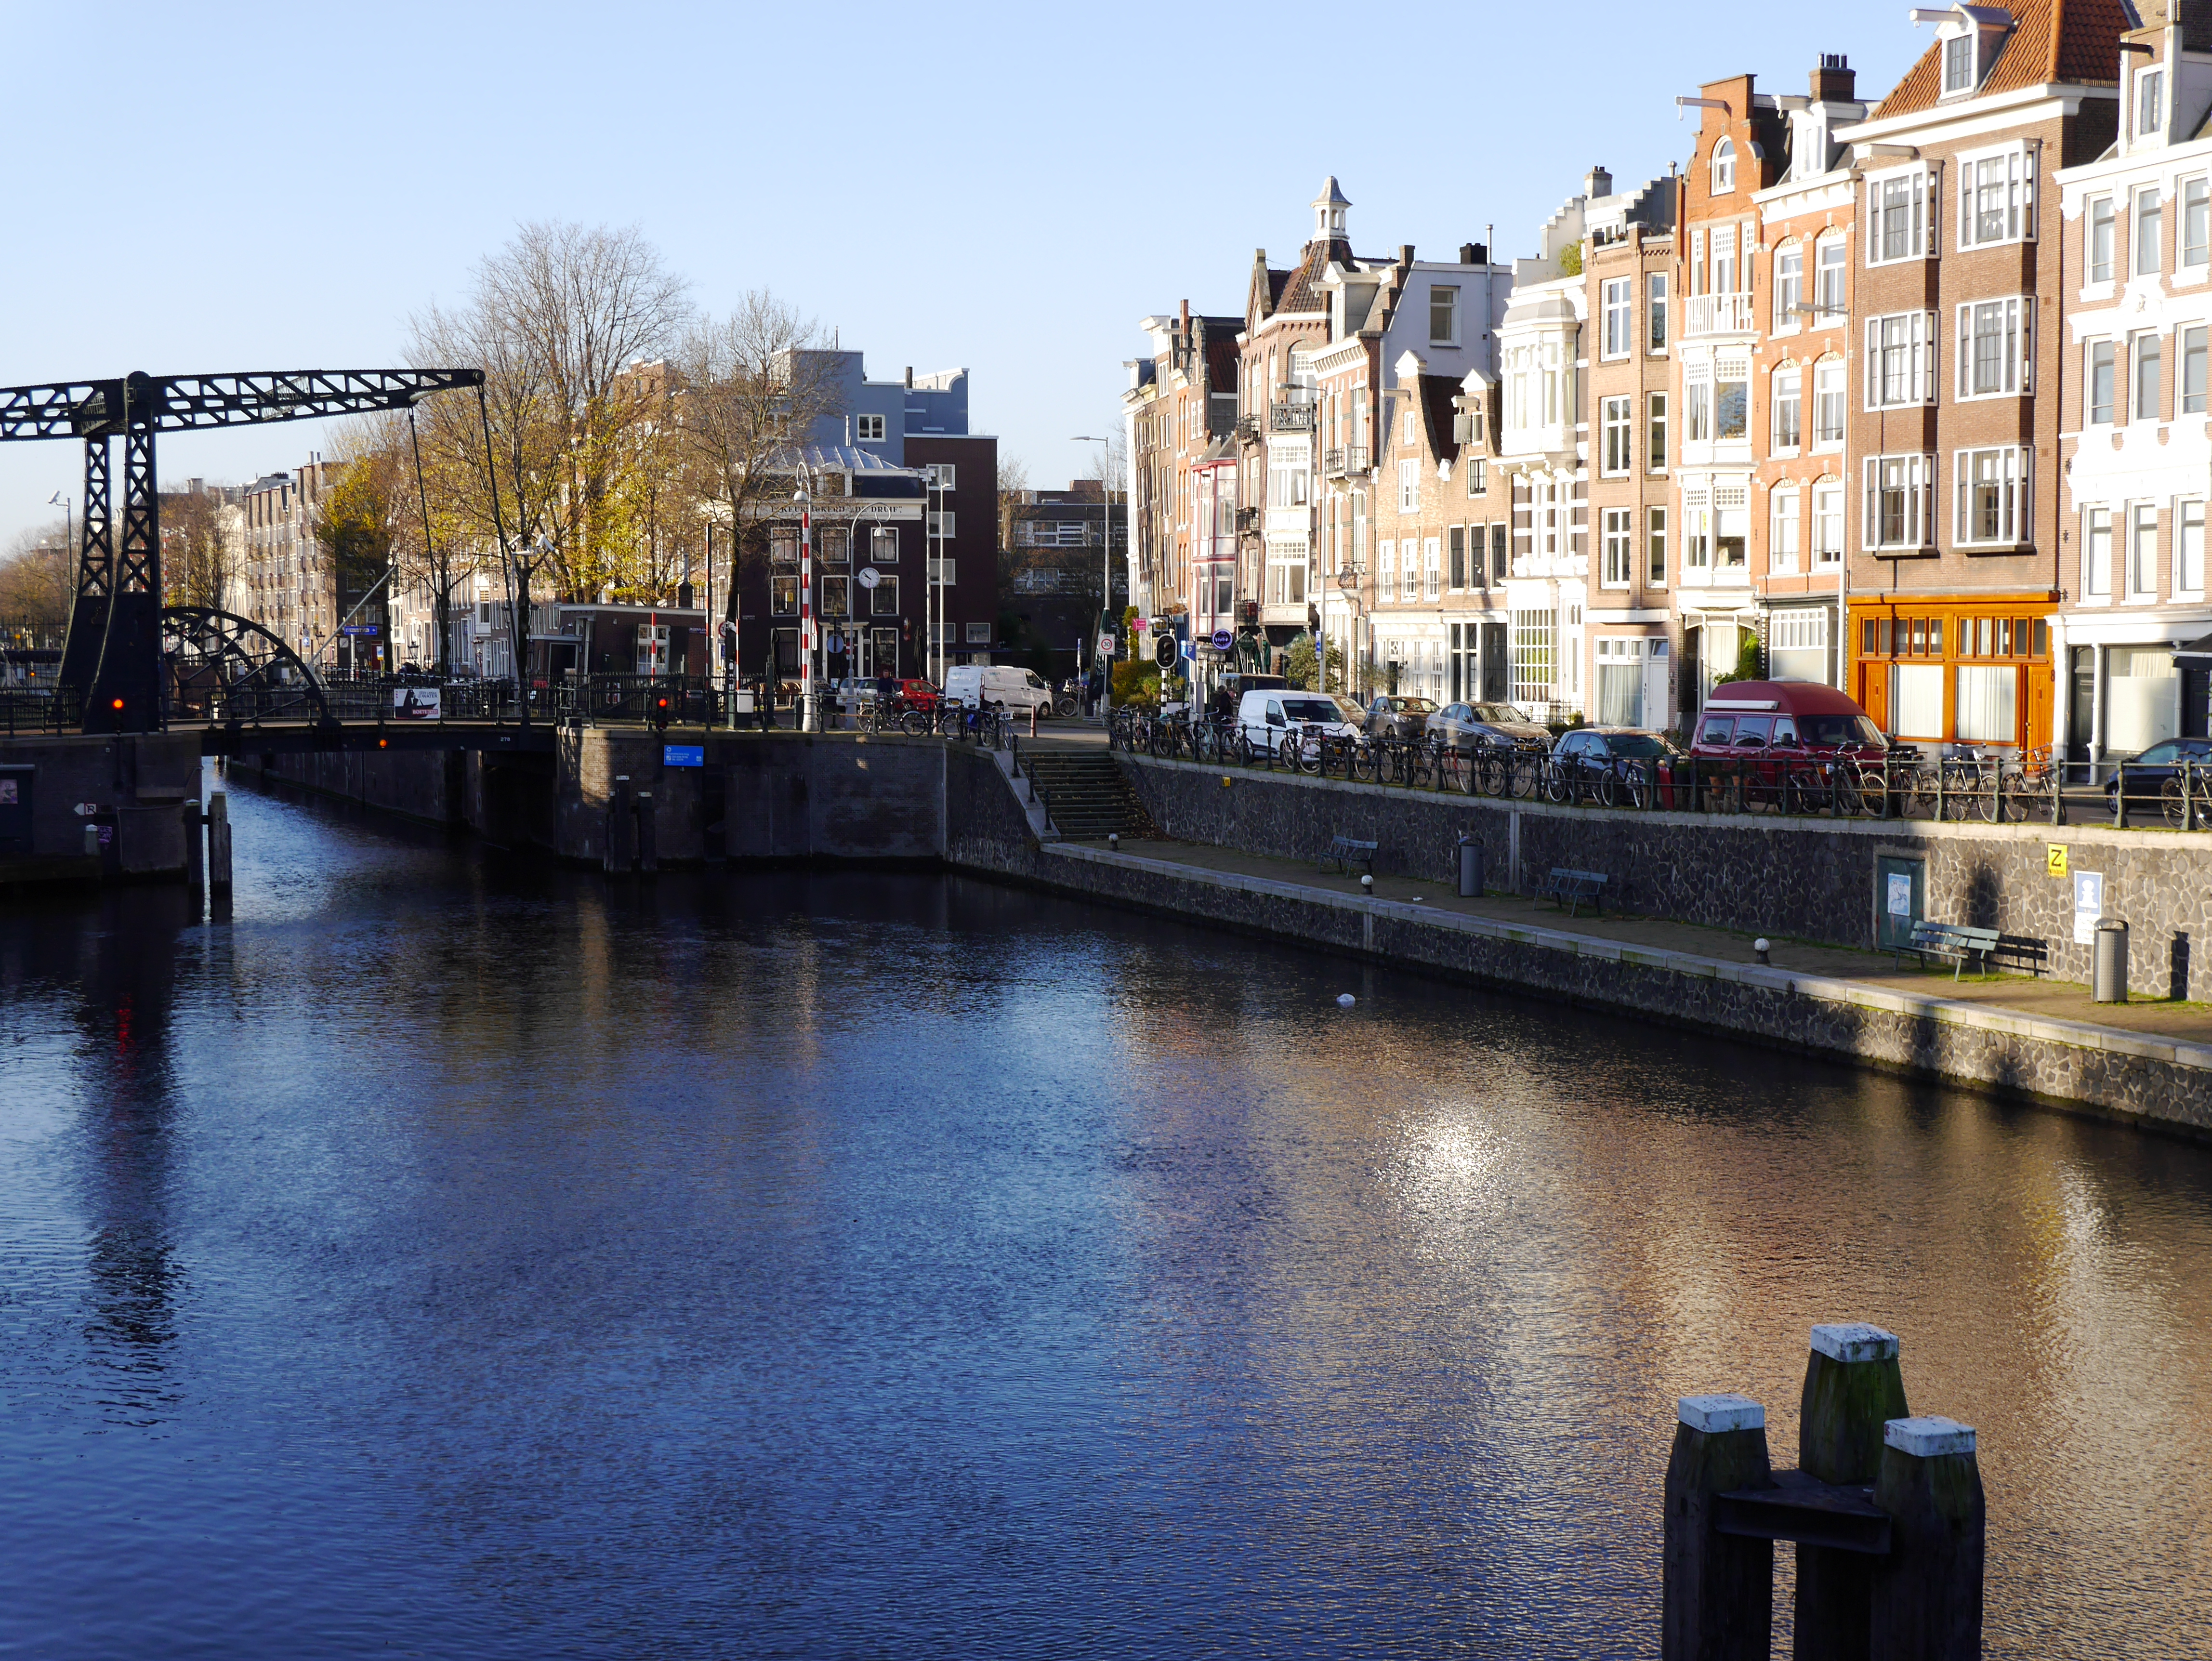 Cana water in sunlight and shadow reflections, Amsterdam city., Cana water in sunlight and shadow reflections, Amsterdam city.